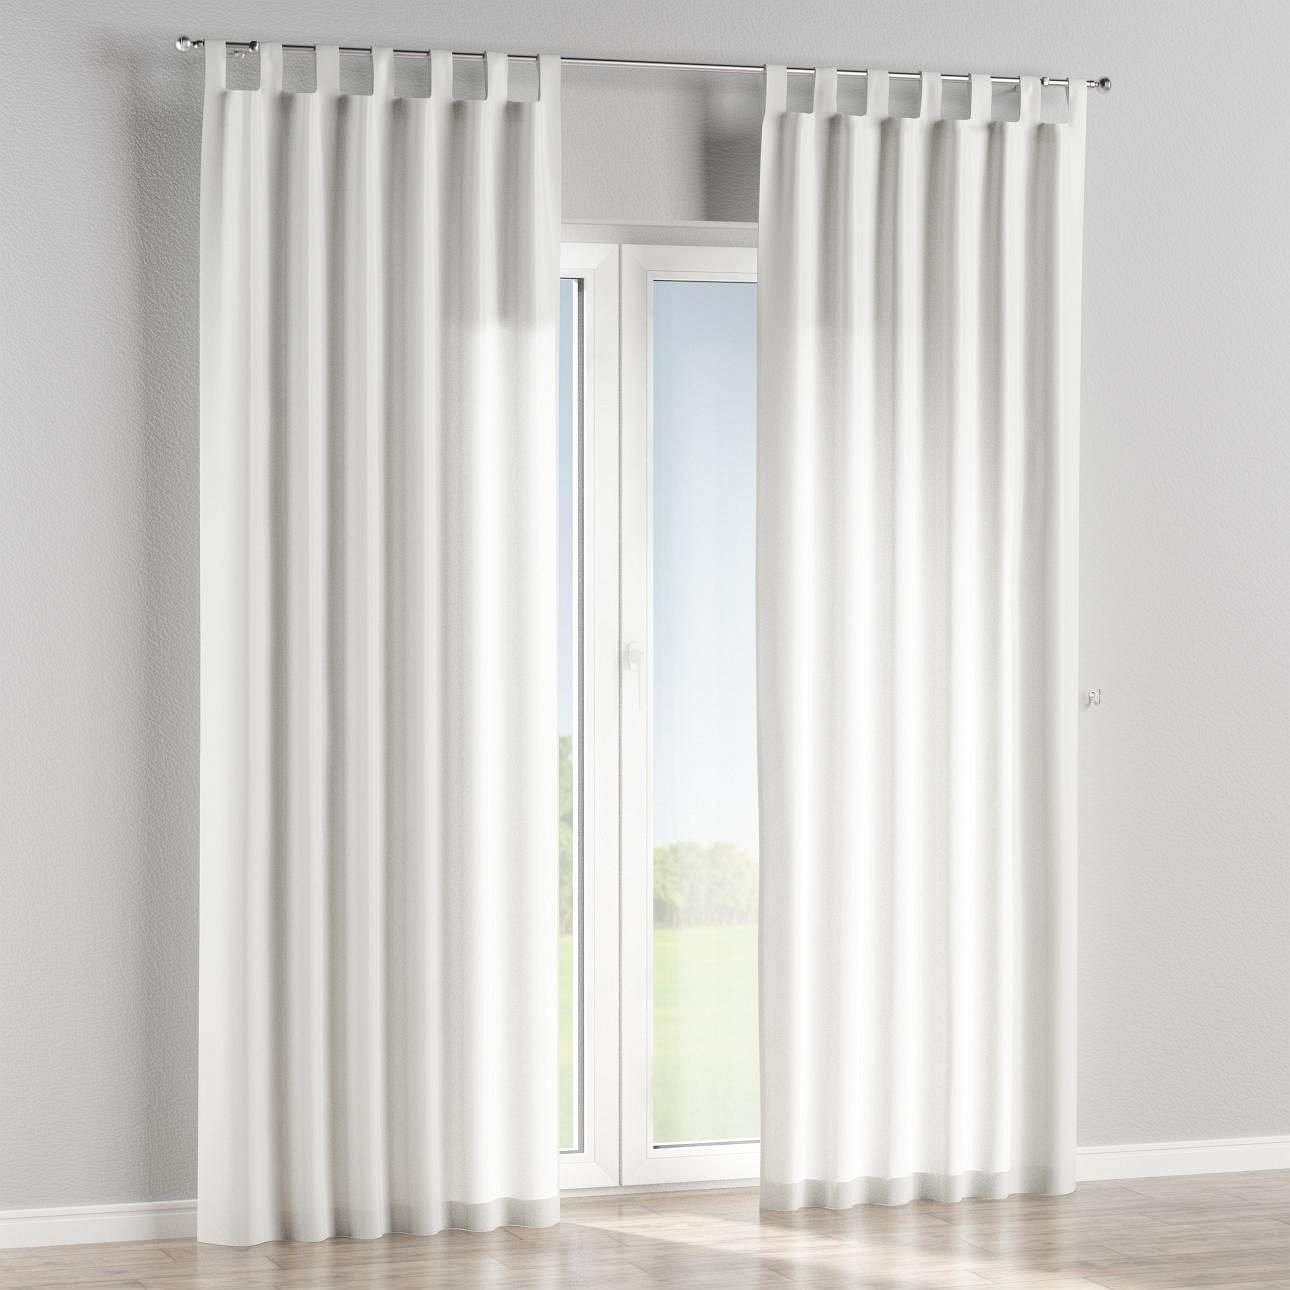 Tab top curtains in collection Milano, fabric: 150-33